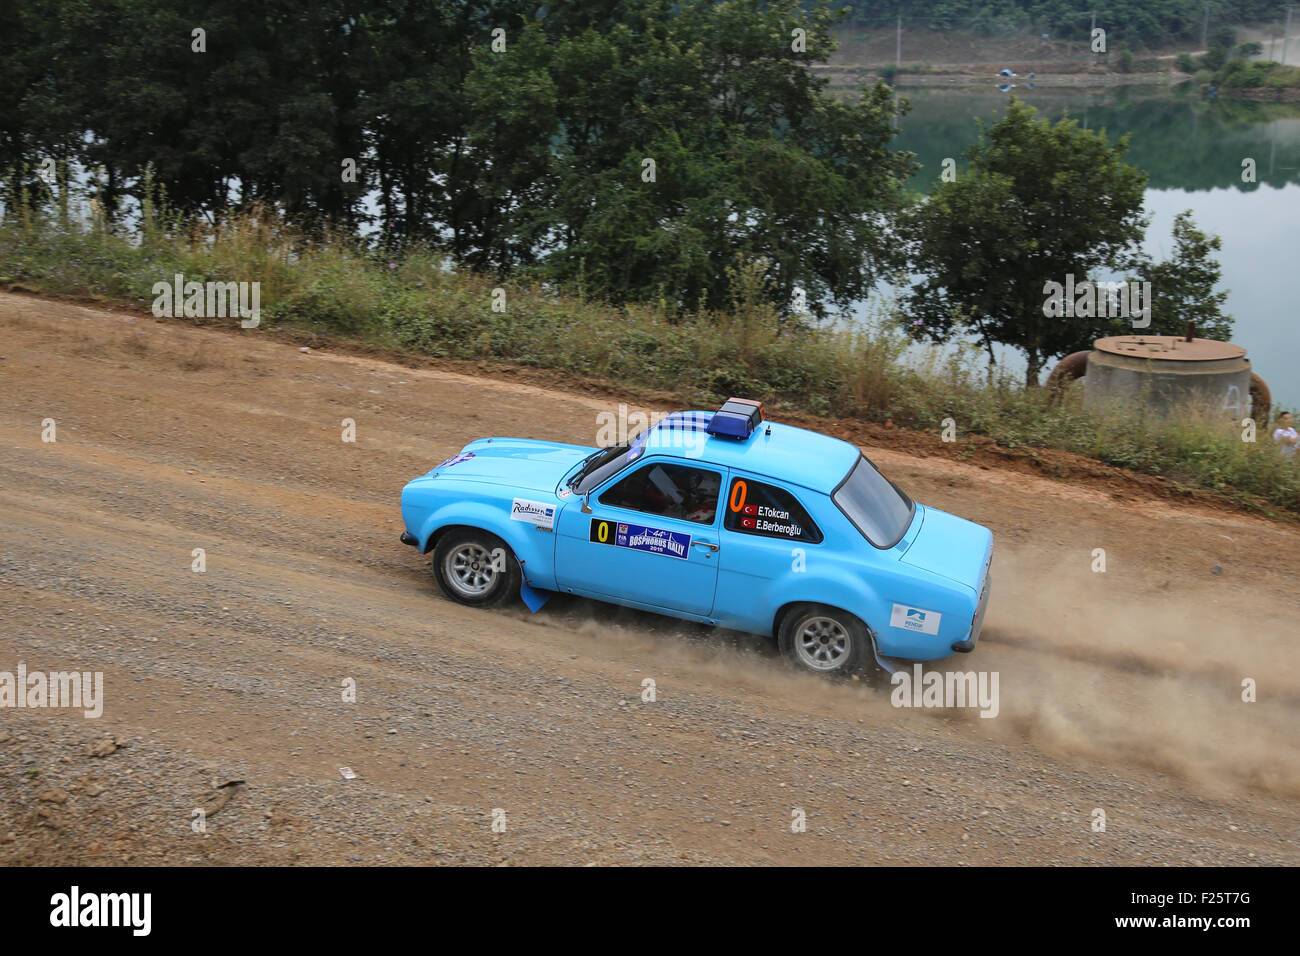 ISTANBUL, TURKEY - JULY 25, 2015: Ercan Tokcan drives safety car of Bosphorus Rally 2015, Deniz stage - Stock Image